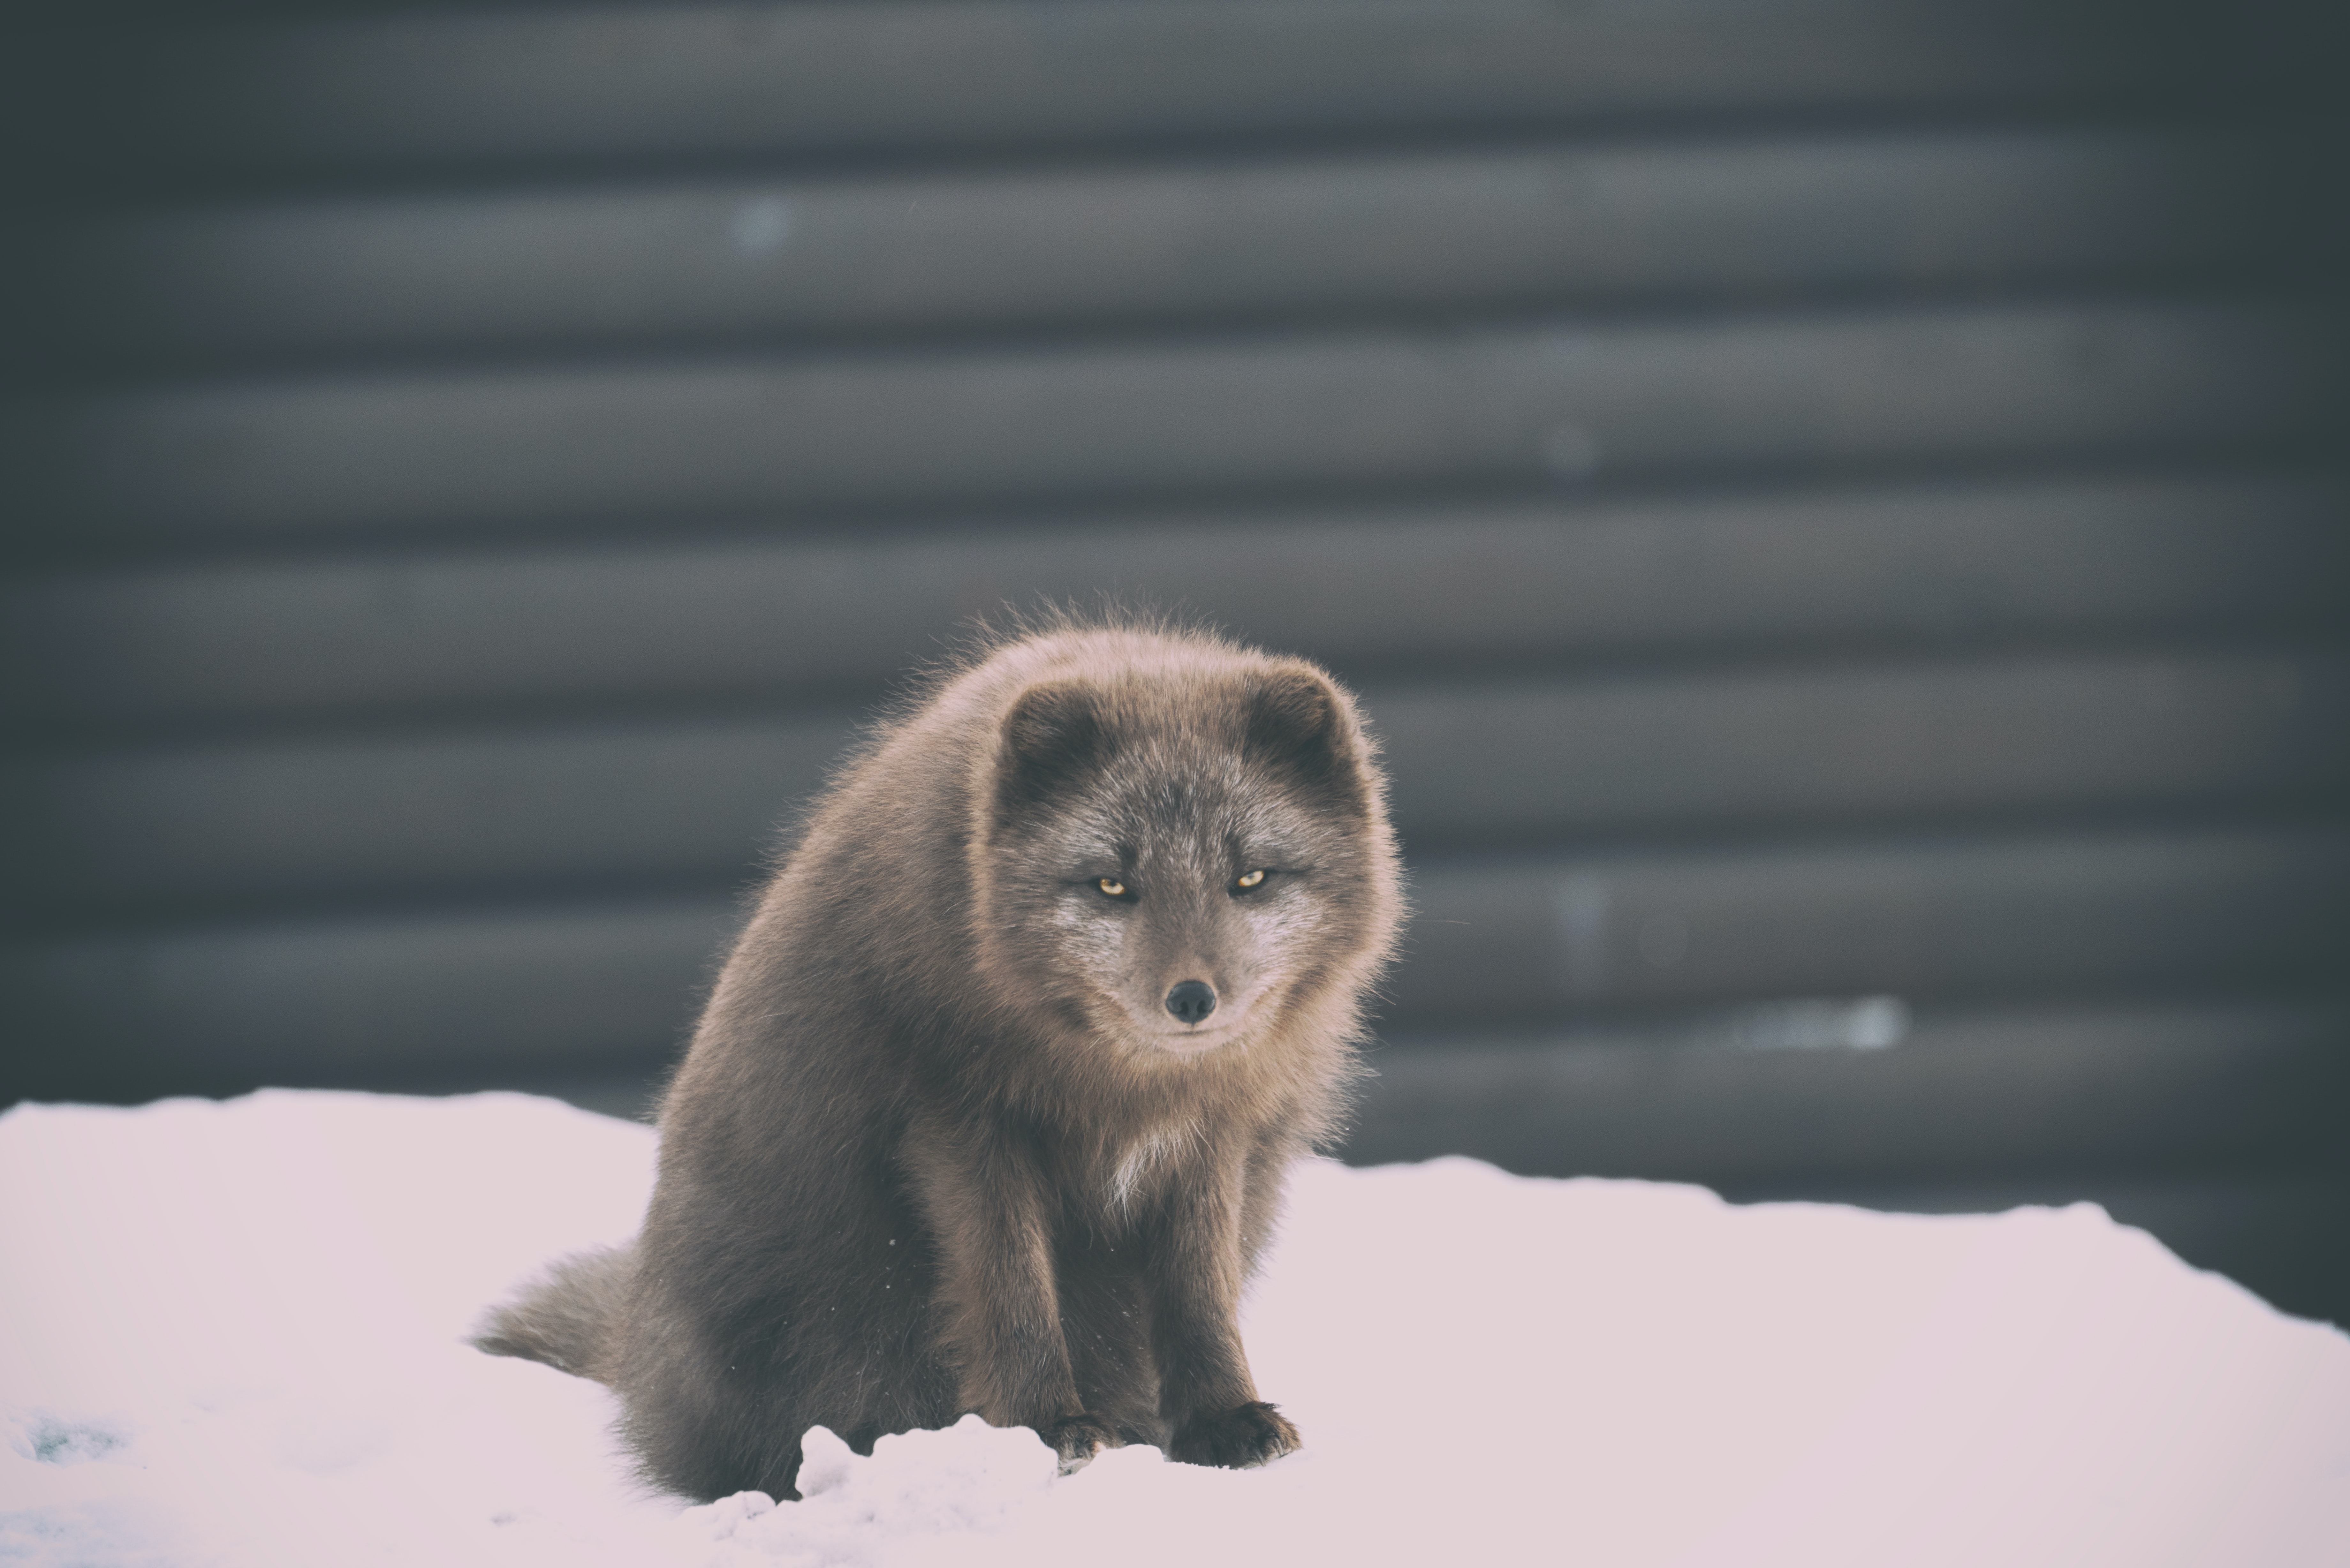 A dark brown snow fox looking at the camera with squinting eyes on a mound of snow in front of a garage door